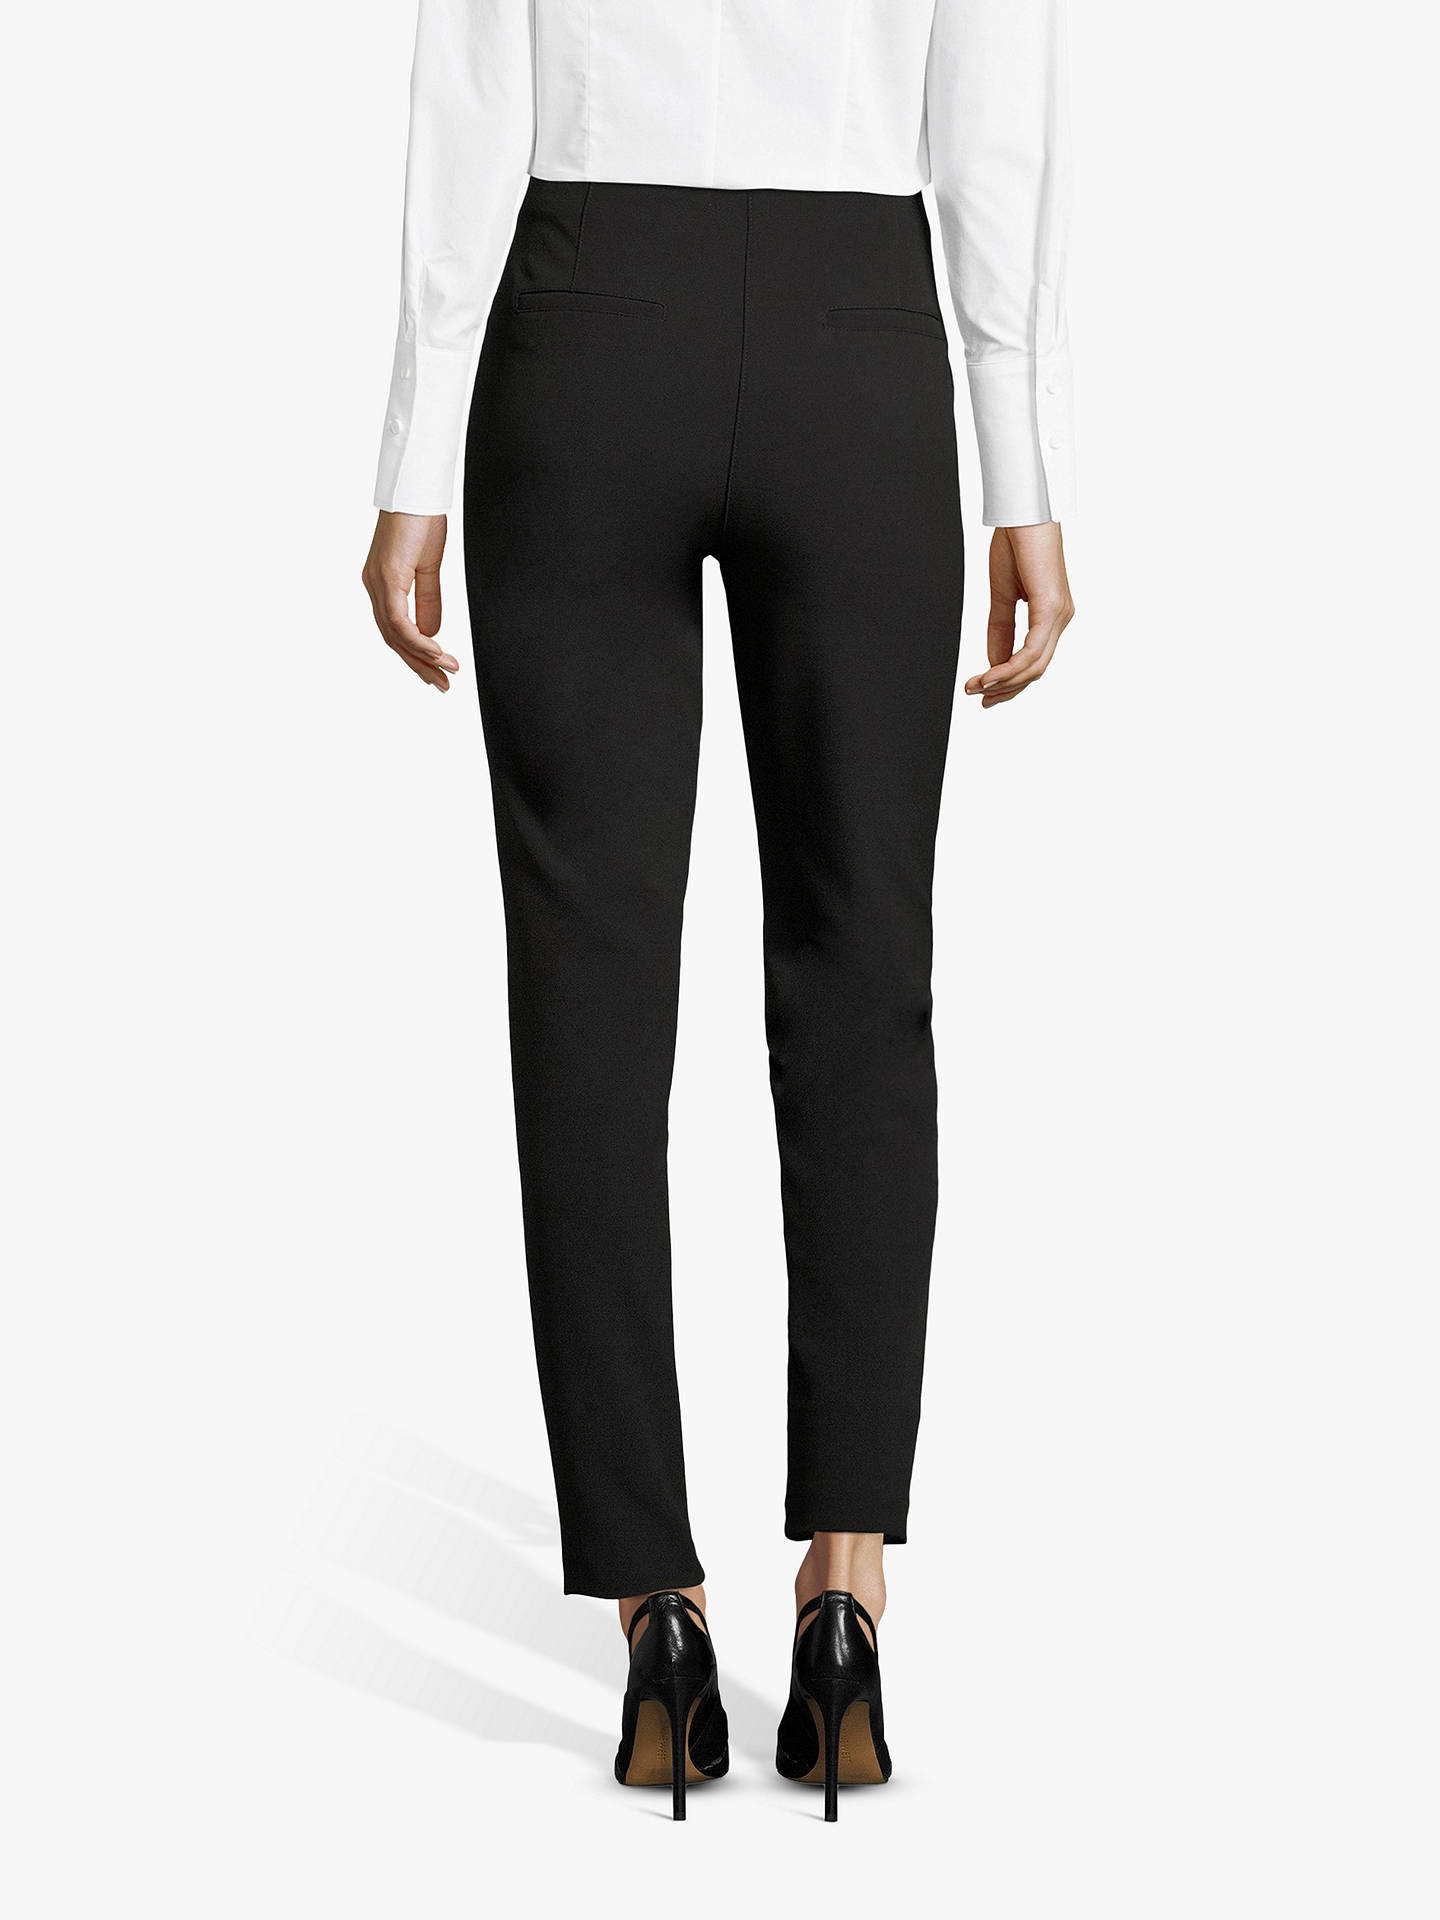 BuyBetty Barclay Tailored Trousers, Black, 20 Online at johnlewis.com